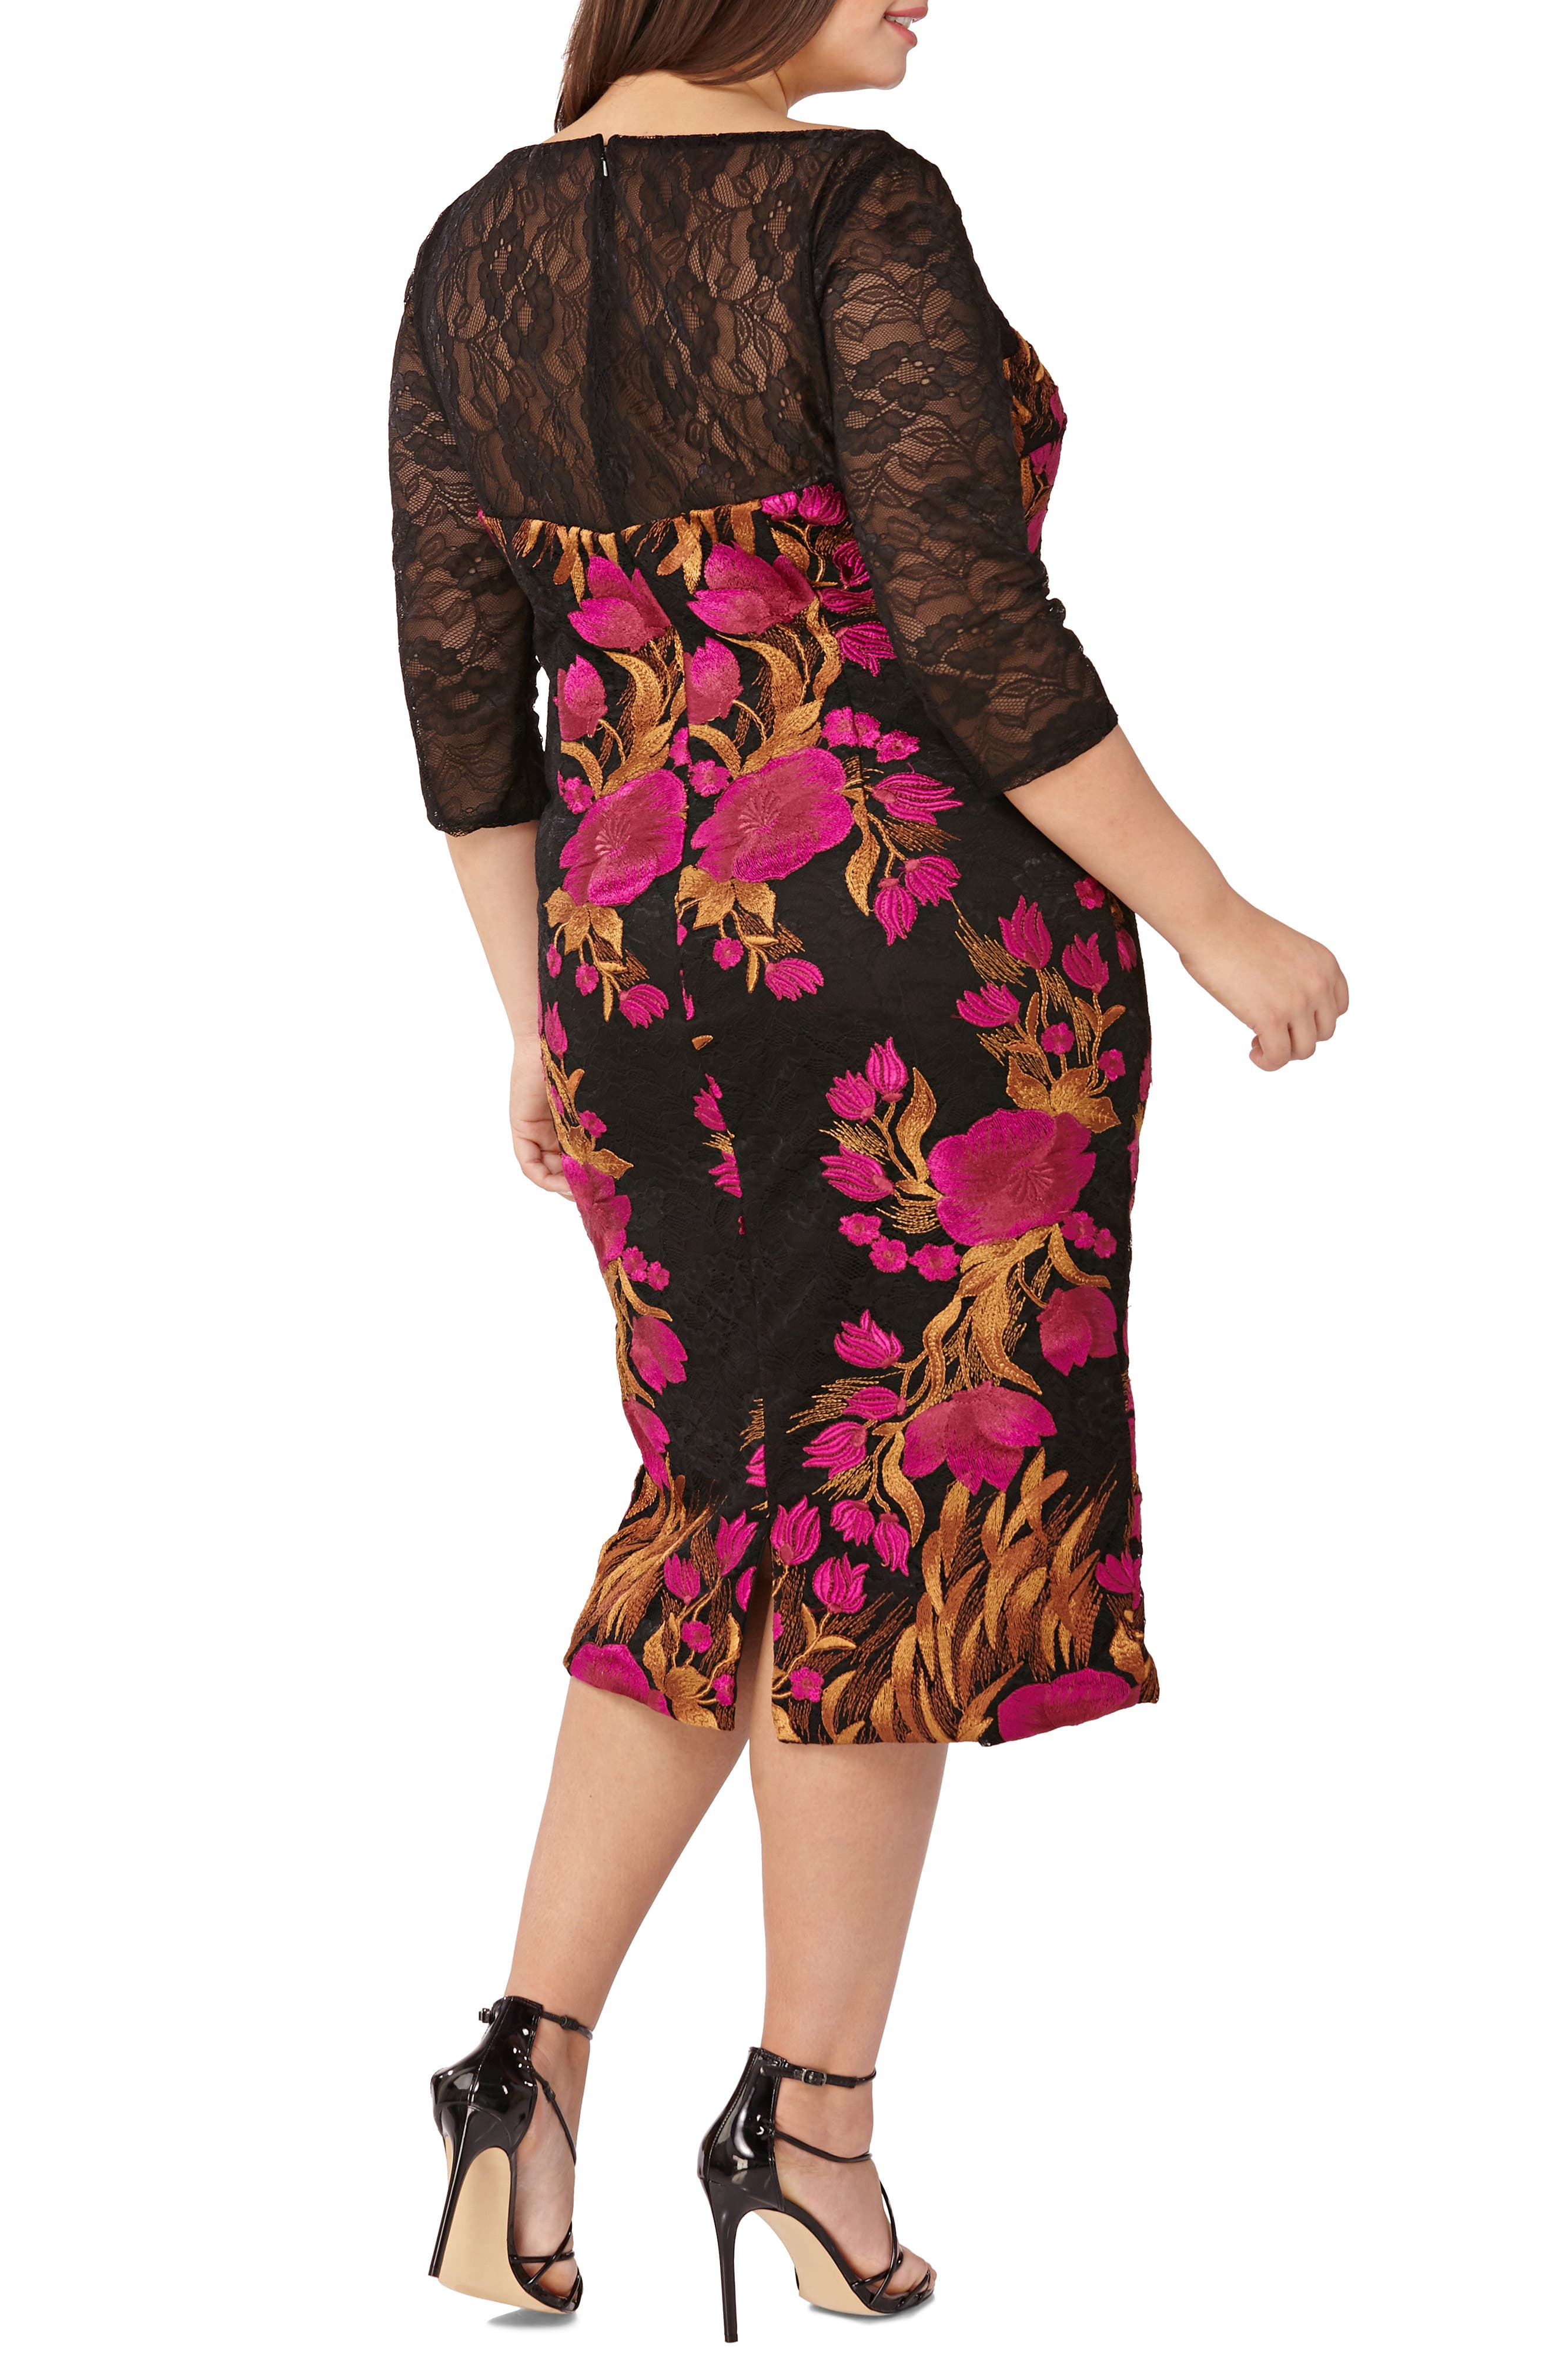 Embroidered Lace Cocktail Dress,                             Alternate thumbnail 2, color,                             MAGENTA/ MULTI